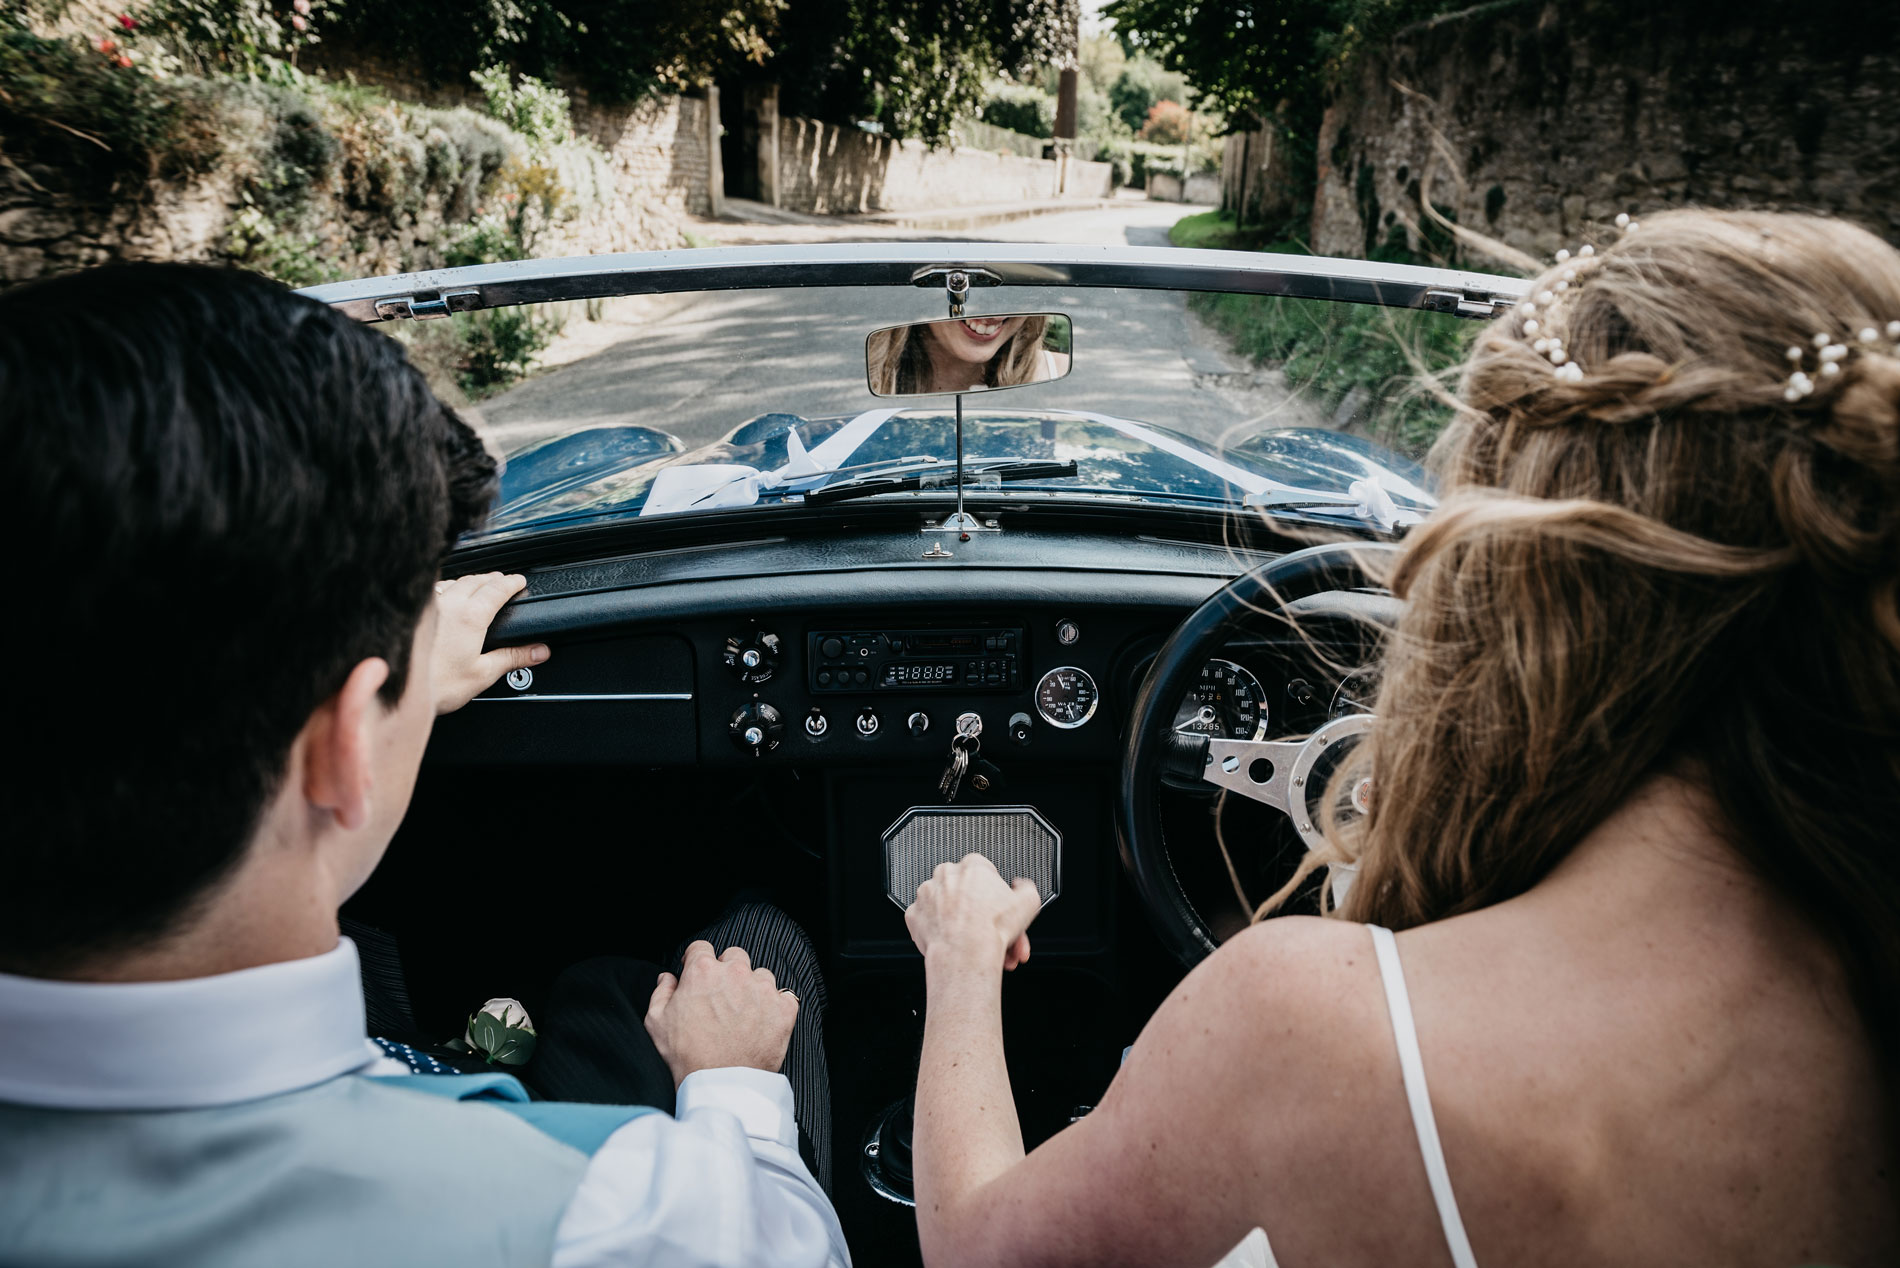 peter and rebecca driving their fast vintage MG car around Oxfordshire